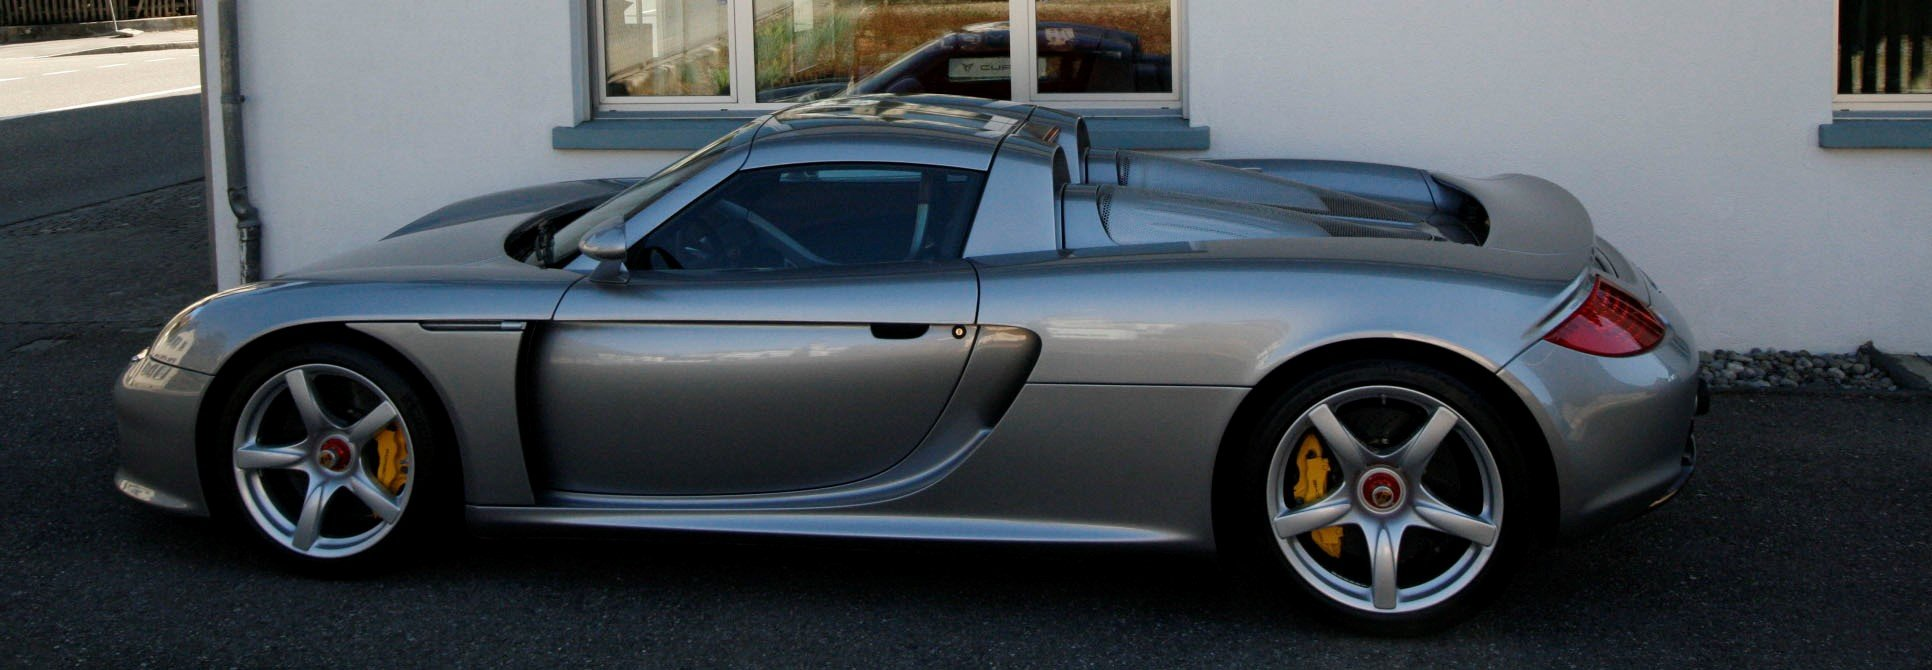 2004 Porsche Carrera GT F1 inspired mid engine supercar For Sale (picture 6 of 6)